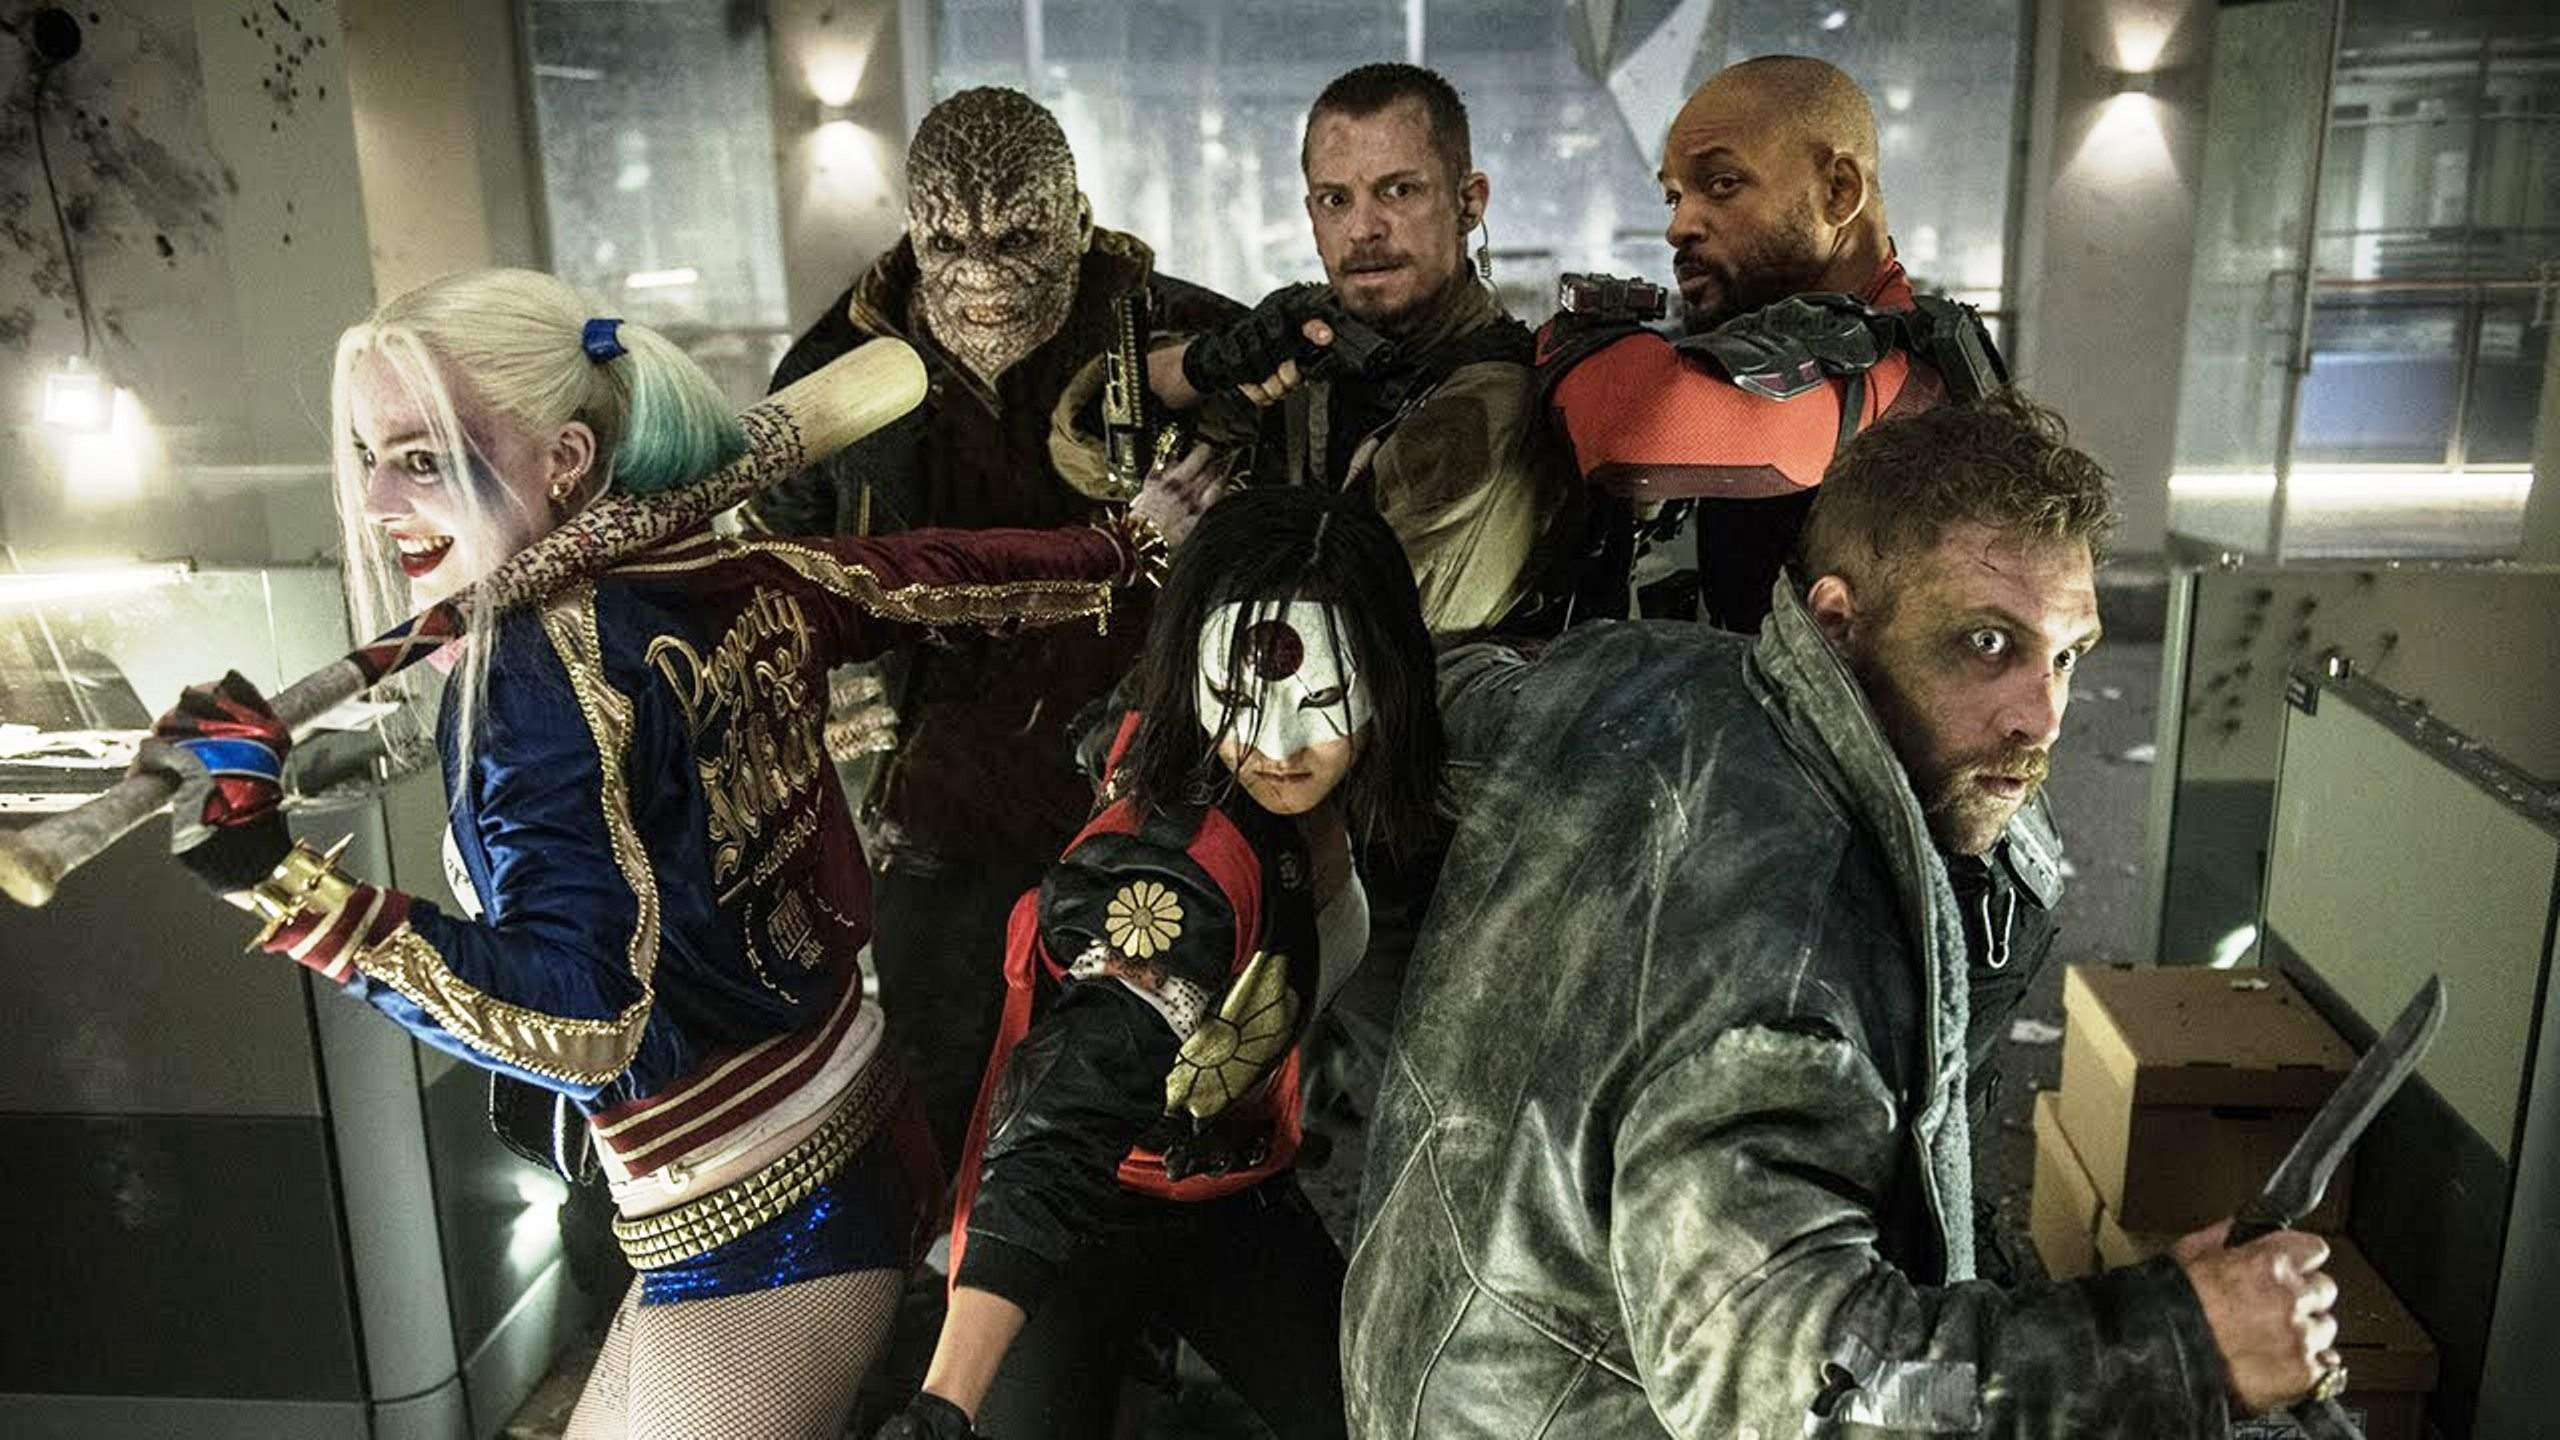 Suicide Squad v The Avengers: Why do DC's superhero movies suck and Marvel's succeed?